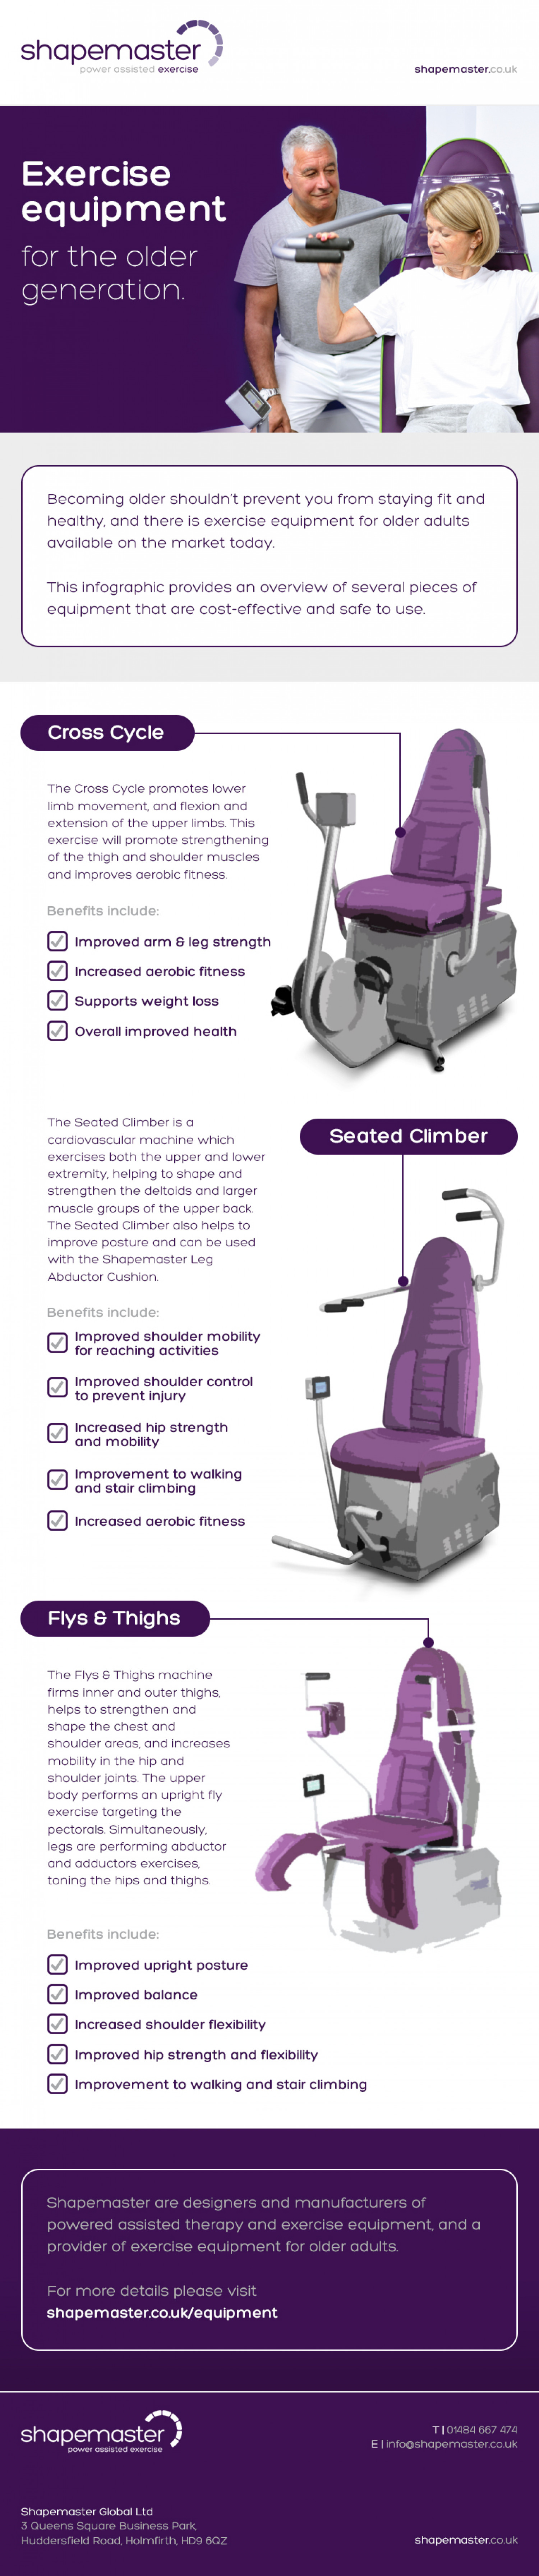 Exercise Equipment for the Older Generation Infographic